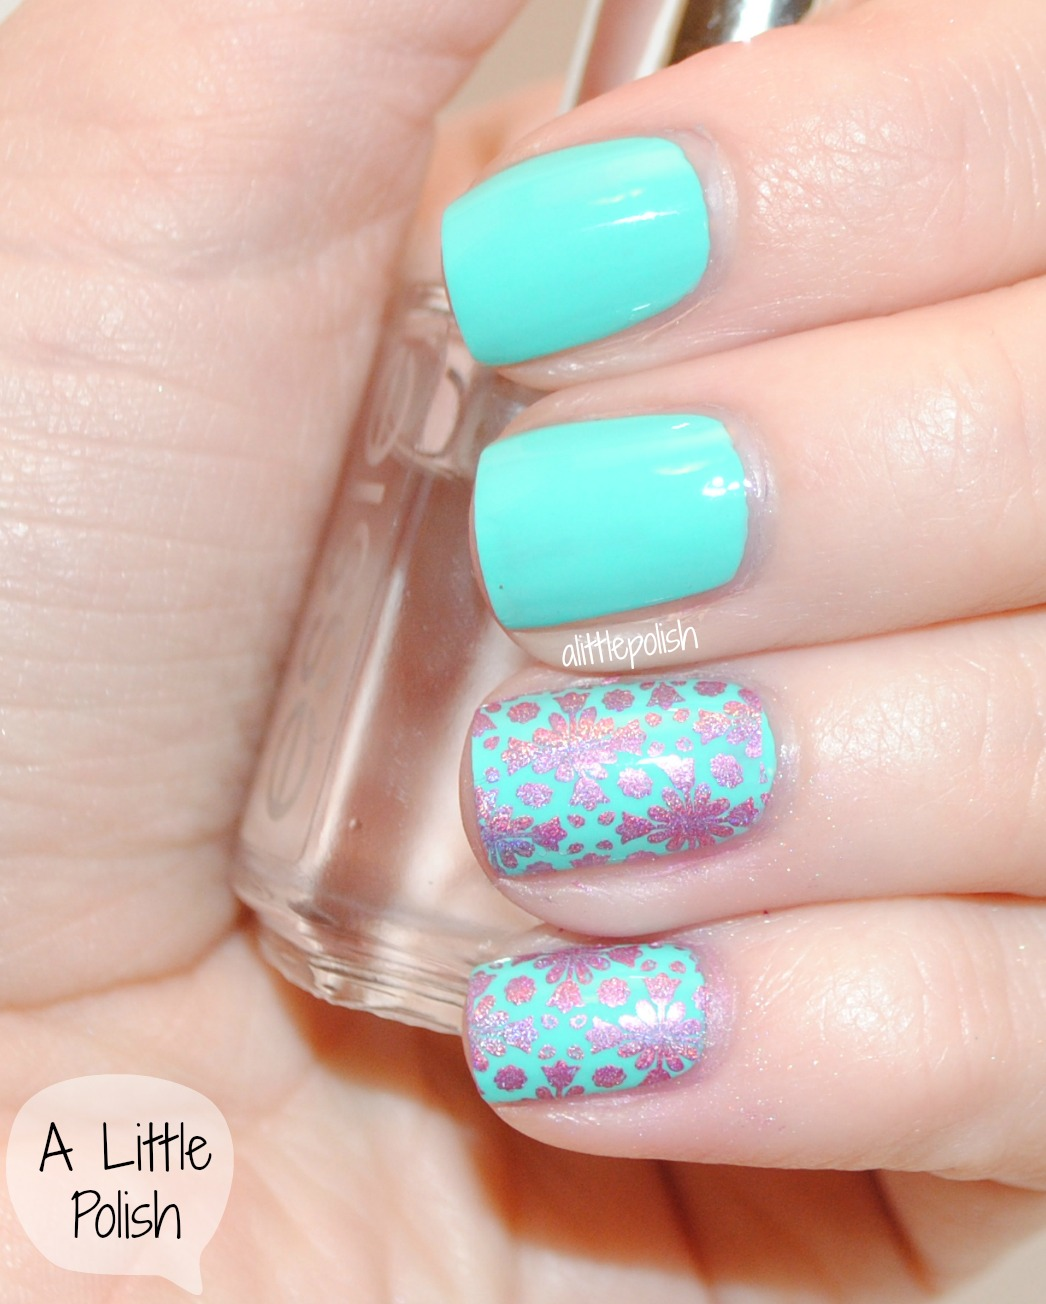 Two Week Nail Polish: A Little Polish: The Nail Challenge Collaborative Presents